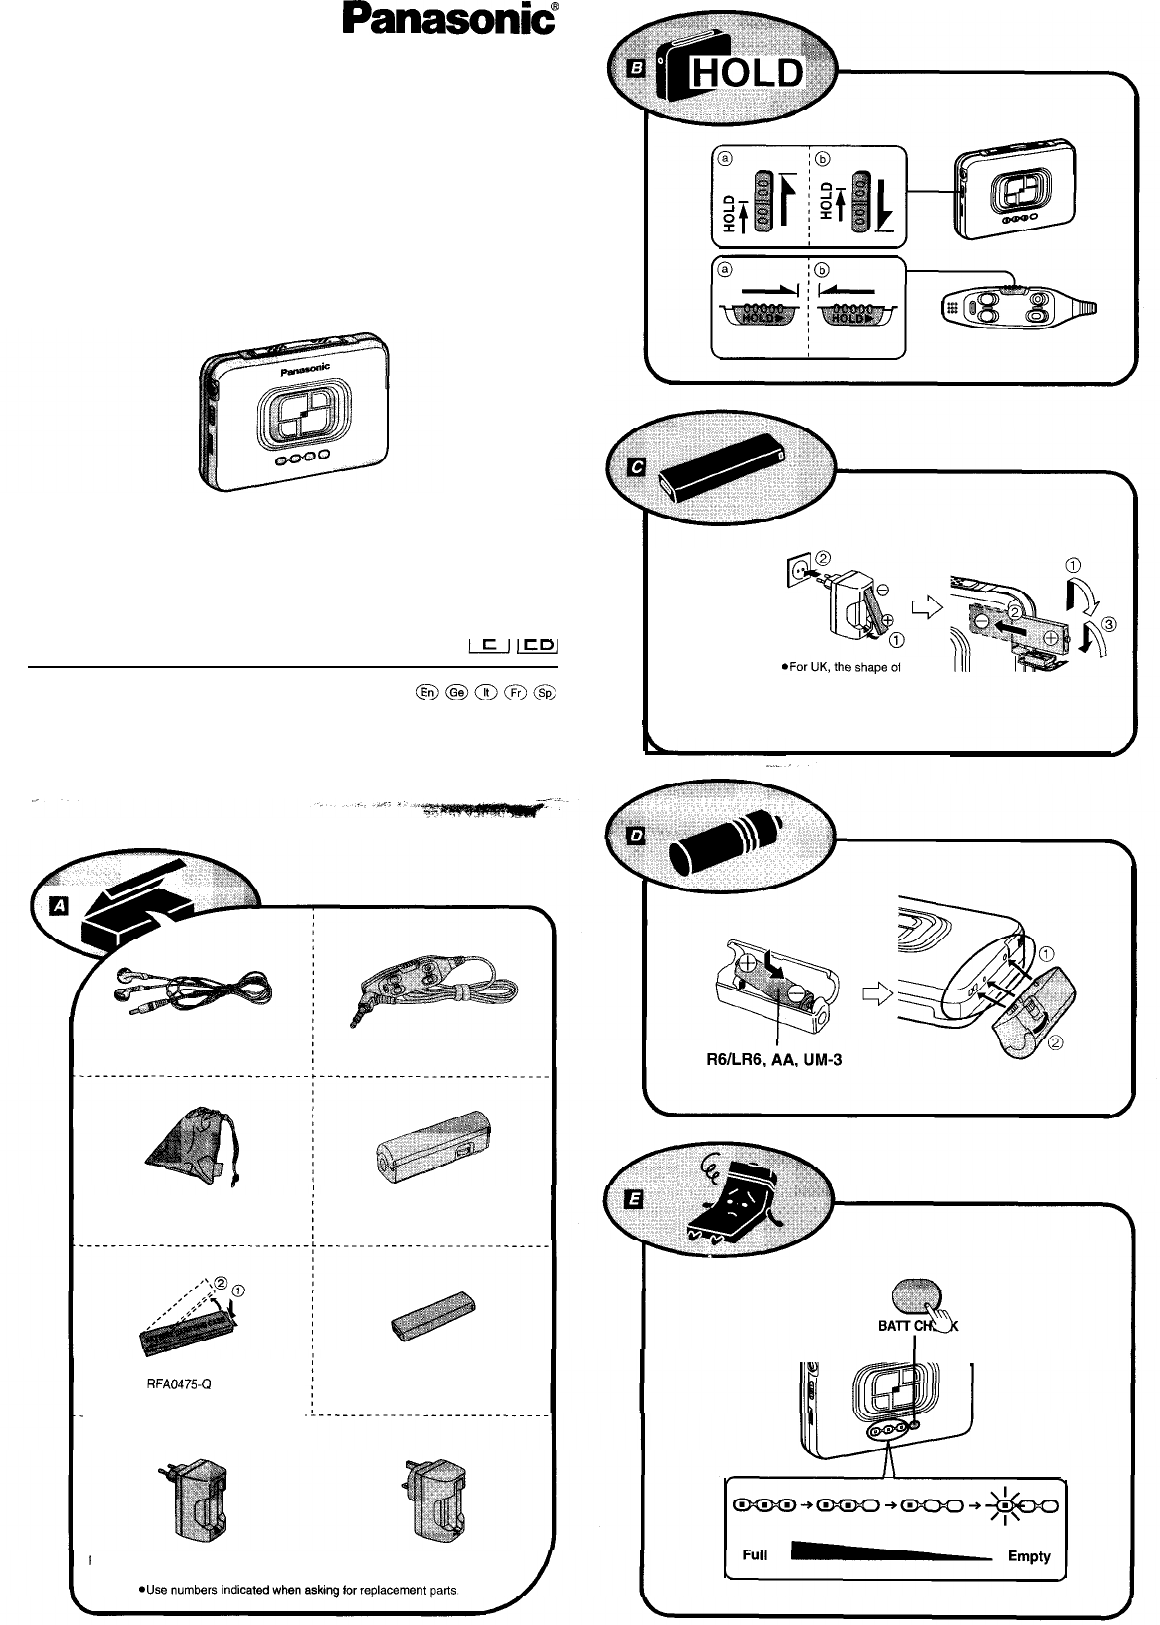 Panasonic Cassette Player RQ-SX45 User Guide